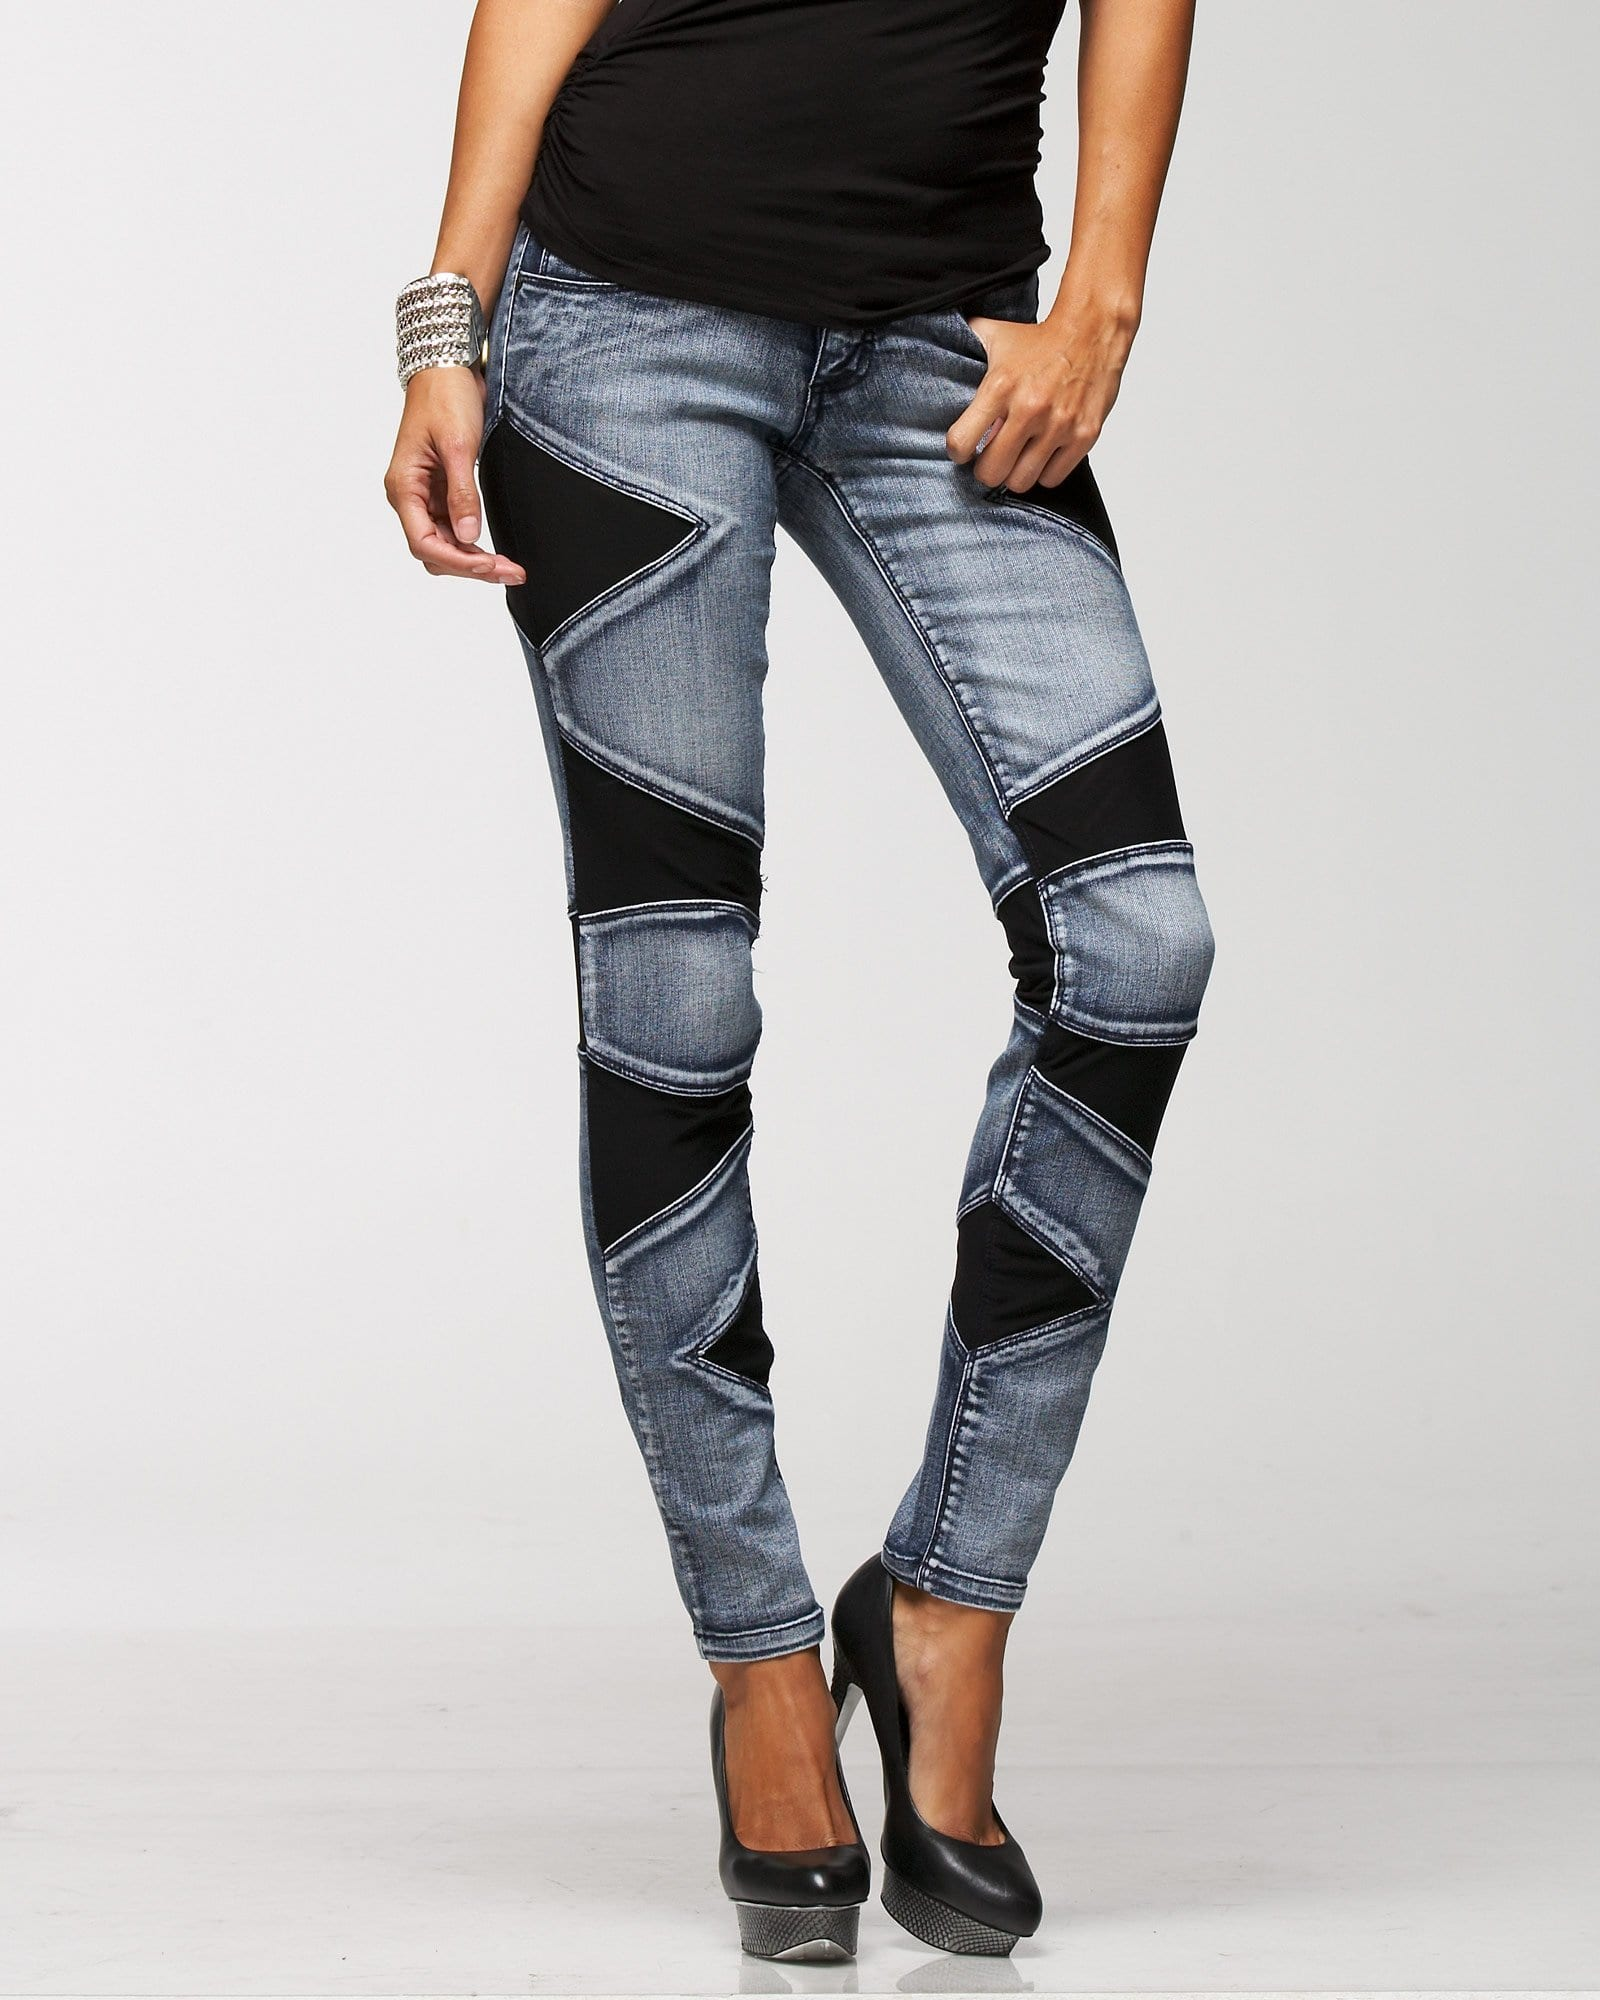 funky jeans for girls 15 swag jeans for girls